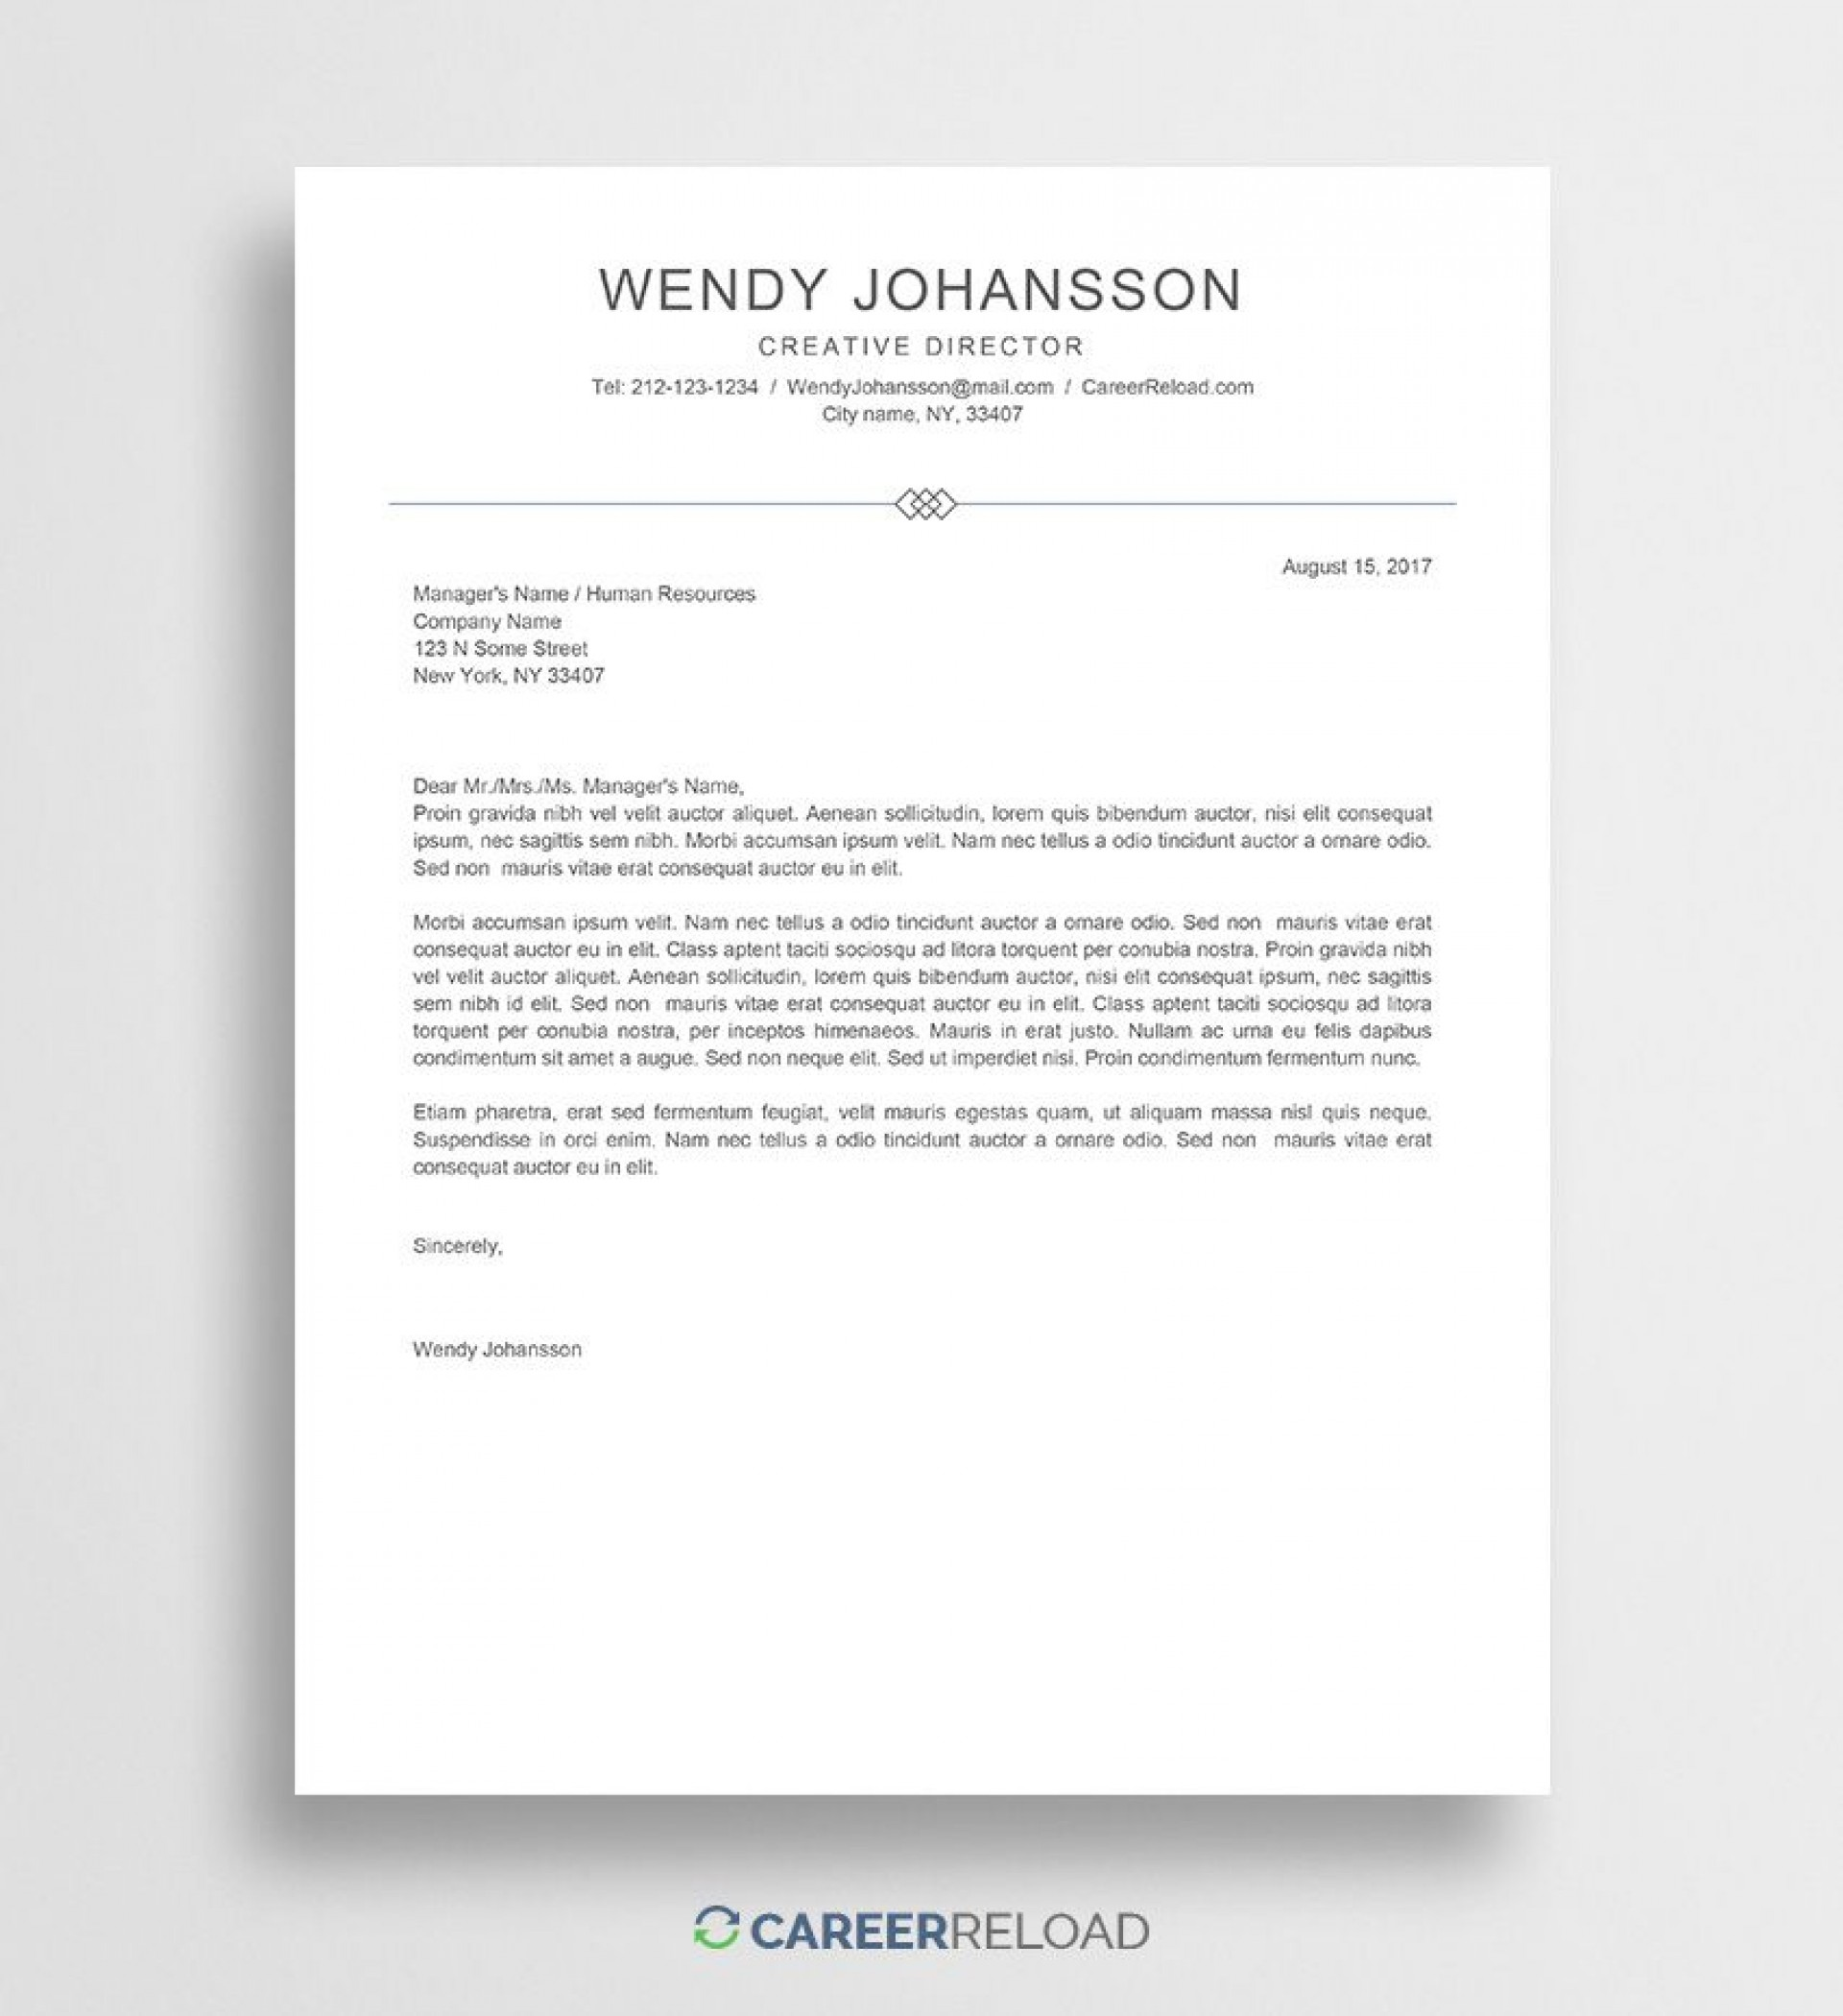 006 Unforgettable Cover Letter Template Word Free Sample  Creative Doc Microsoft 20071920